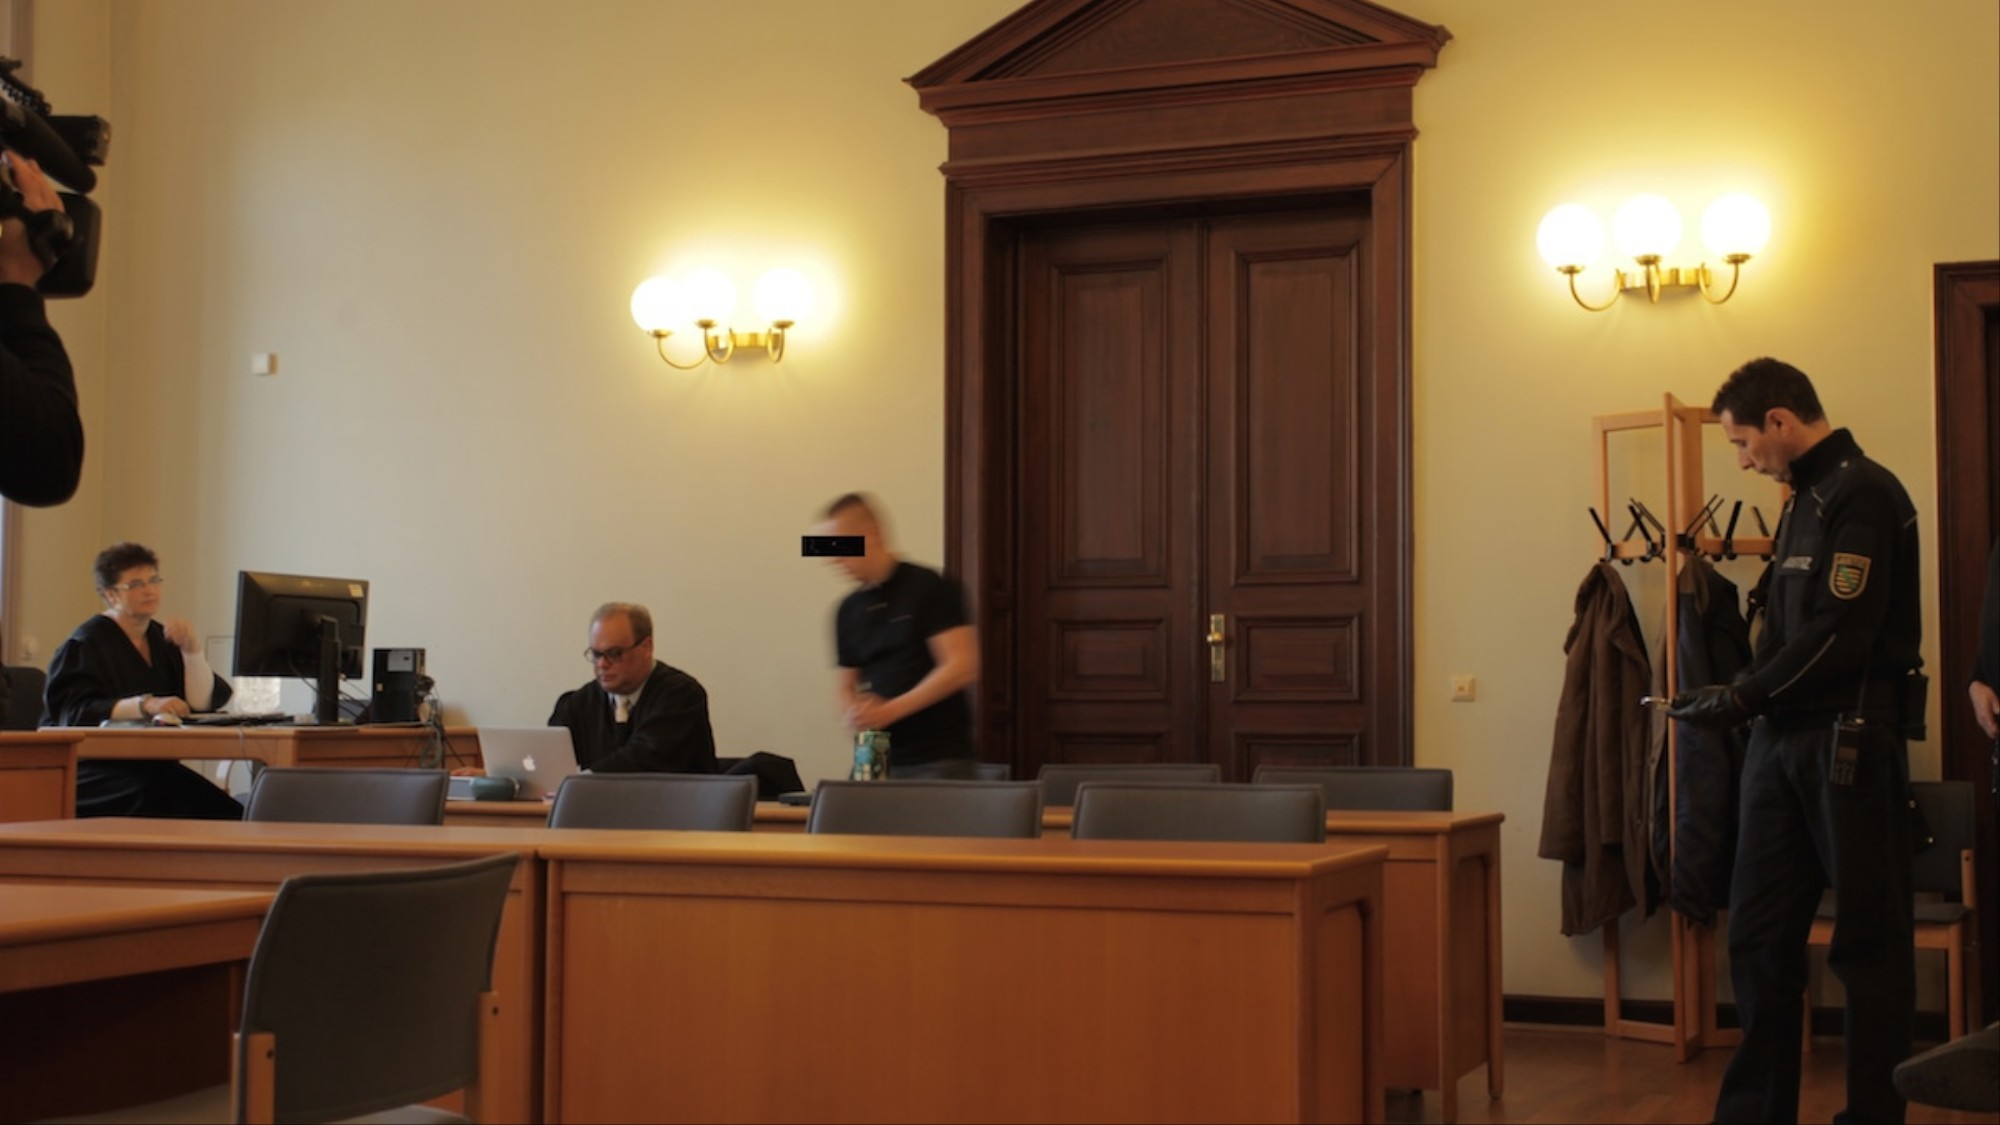 Germany's Most Notorious Darknet Drug Dealer Sentenced to Only 7